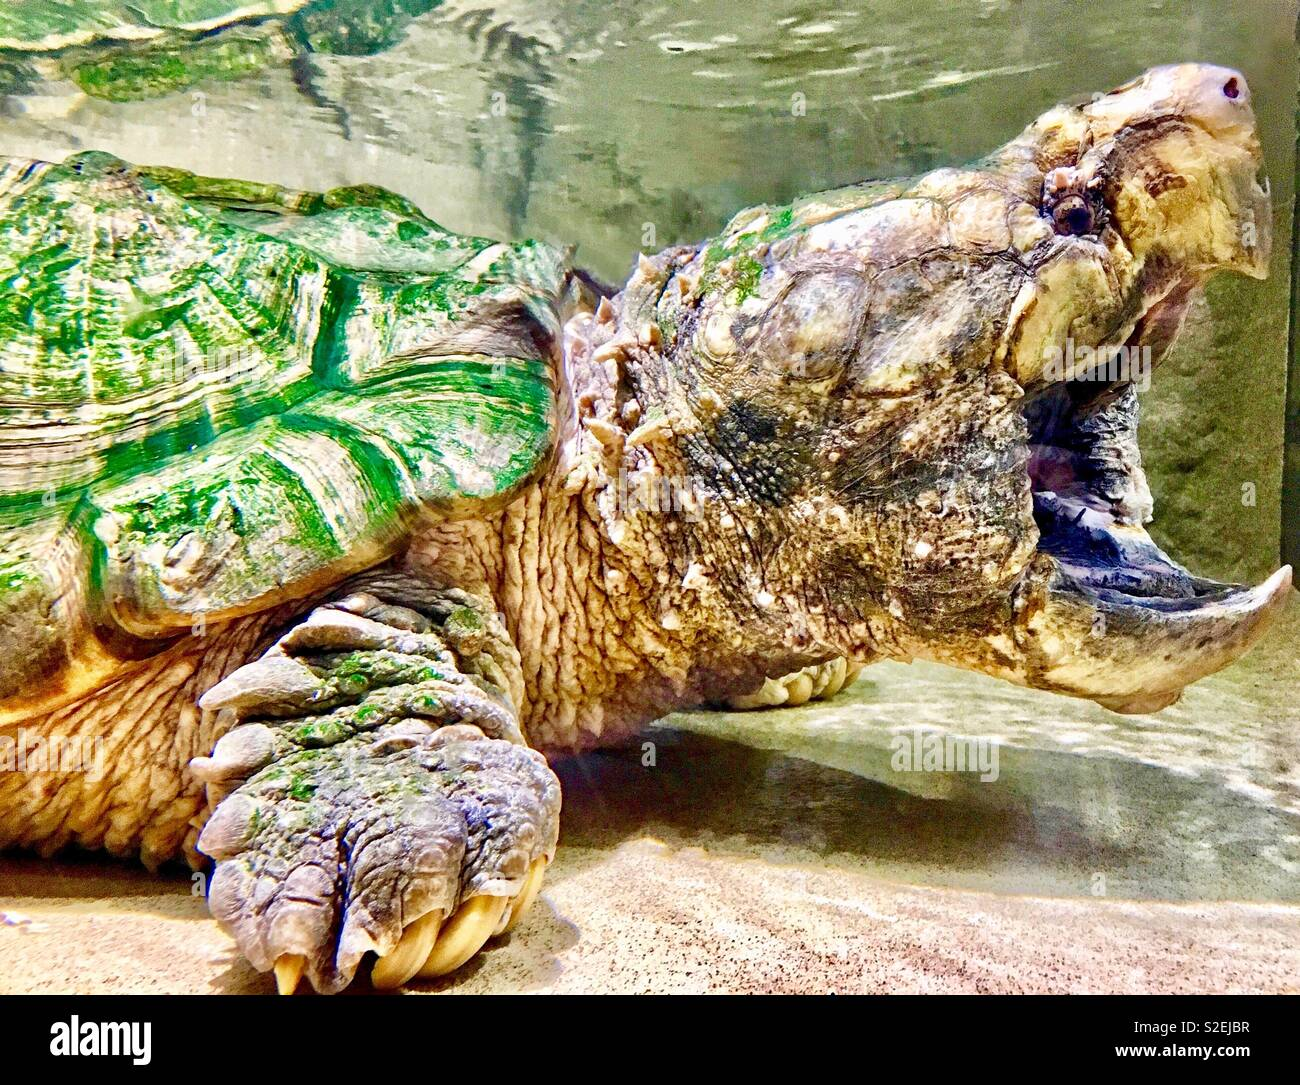 Open Claws Stock Photos & Open Claws Stock Images - Alamy